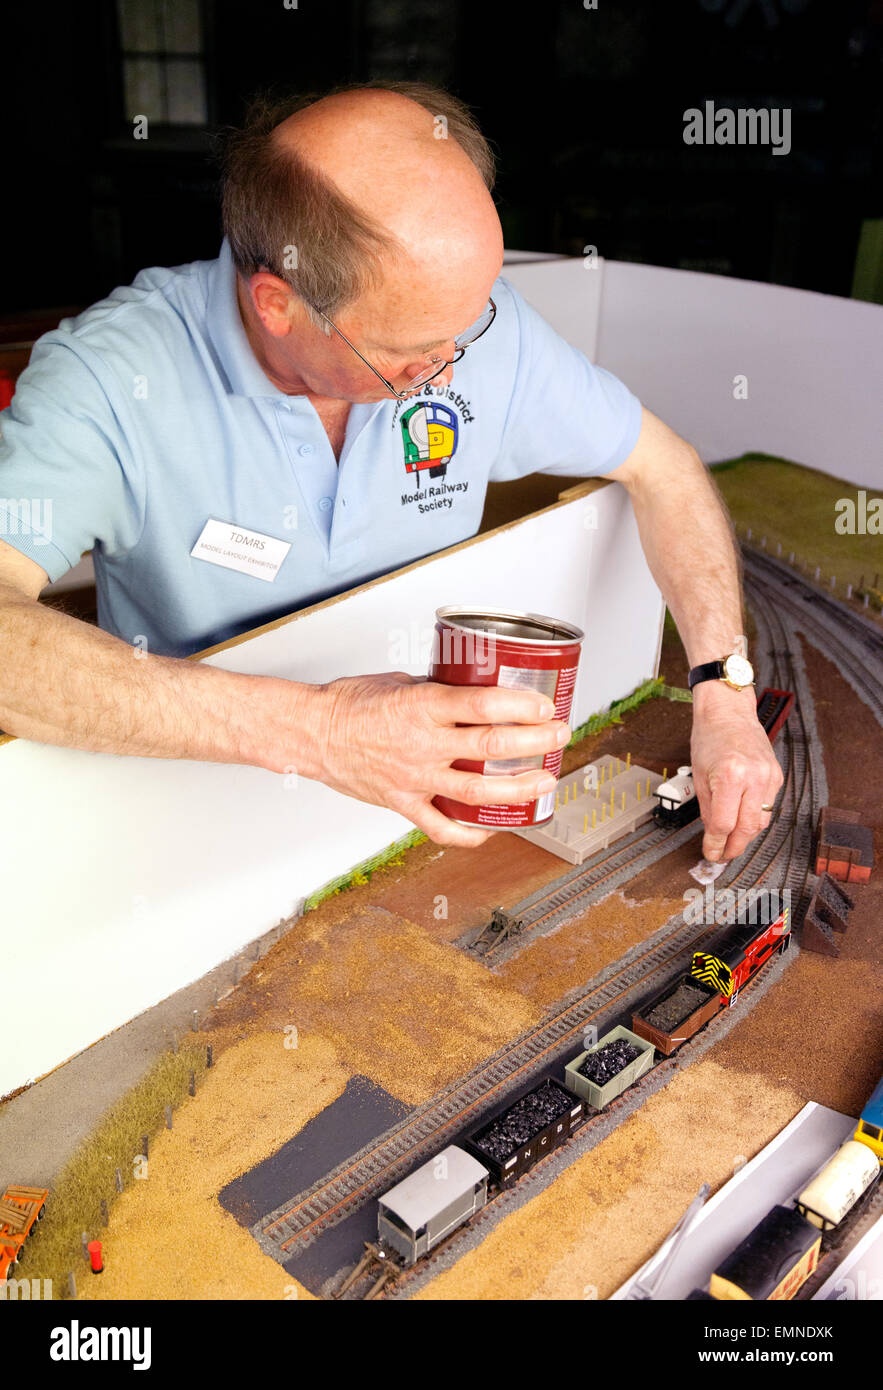 A model railway enthusiast building a track, Bressingham Steam Museum, Norfolk UK - Stock Image